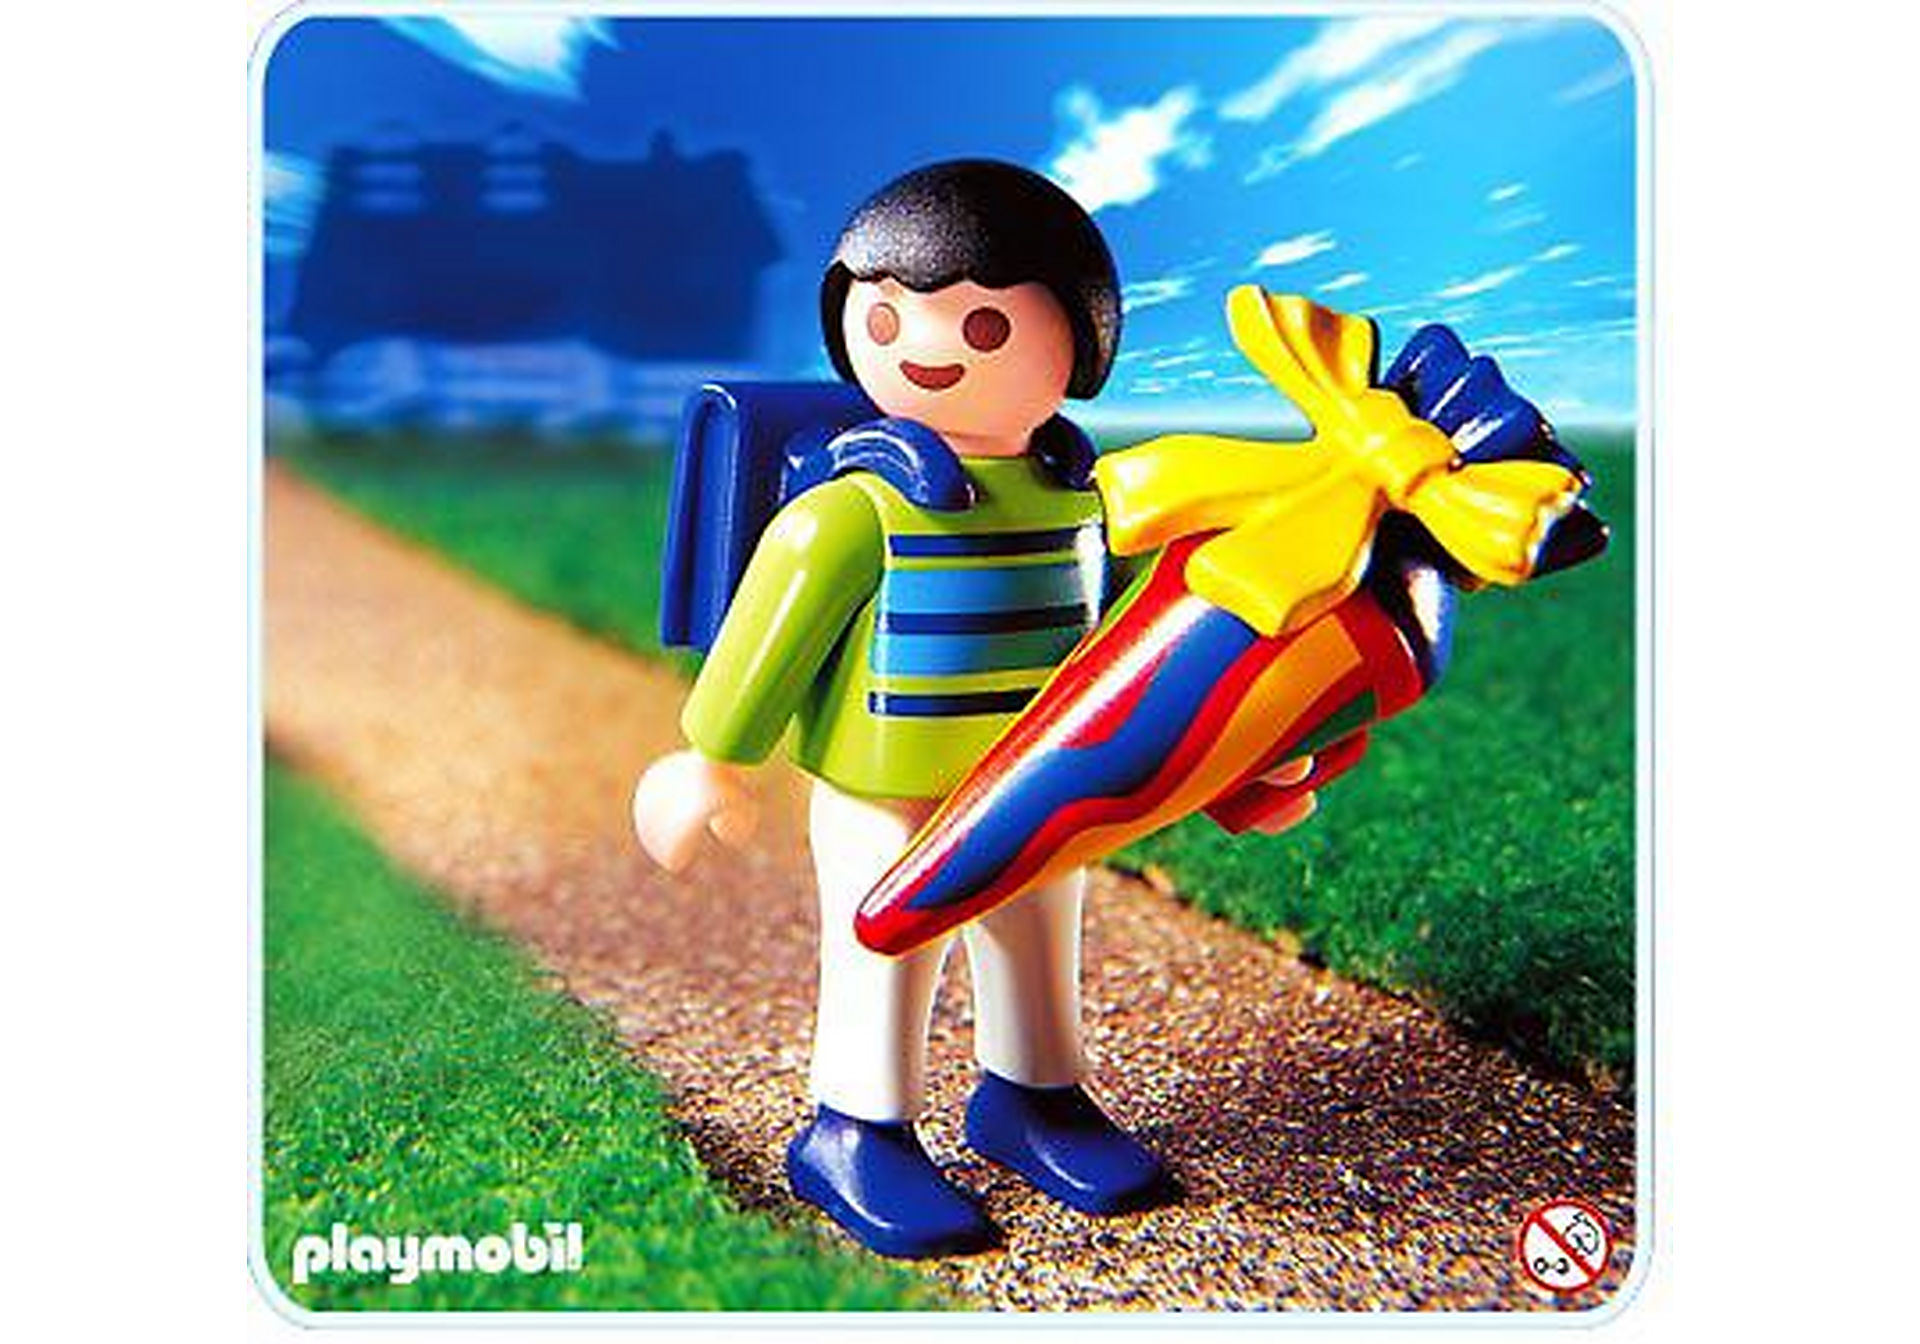 http://media.playmobil.com/i/playmobil/4618-A_product_detail/Abc-Schütze